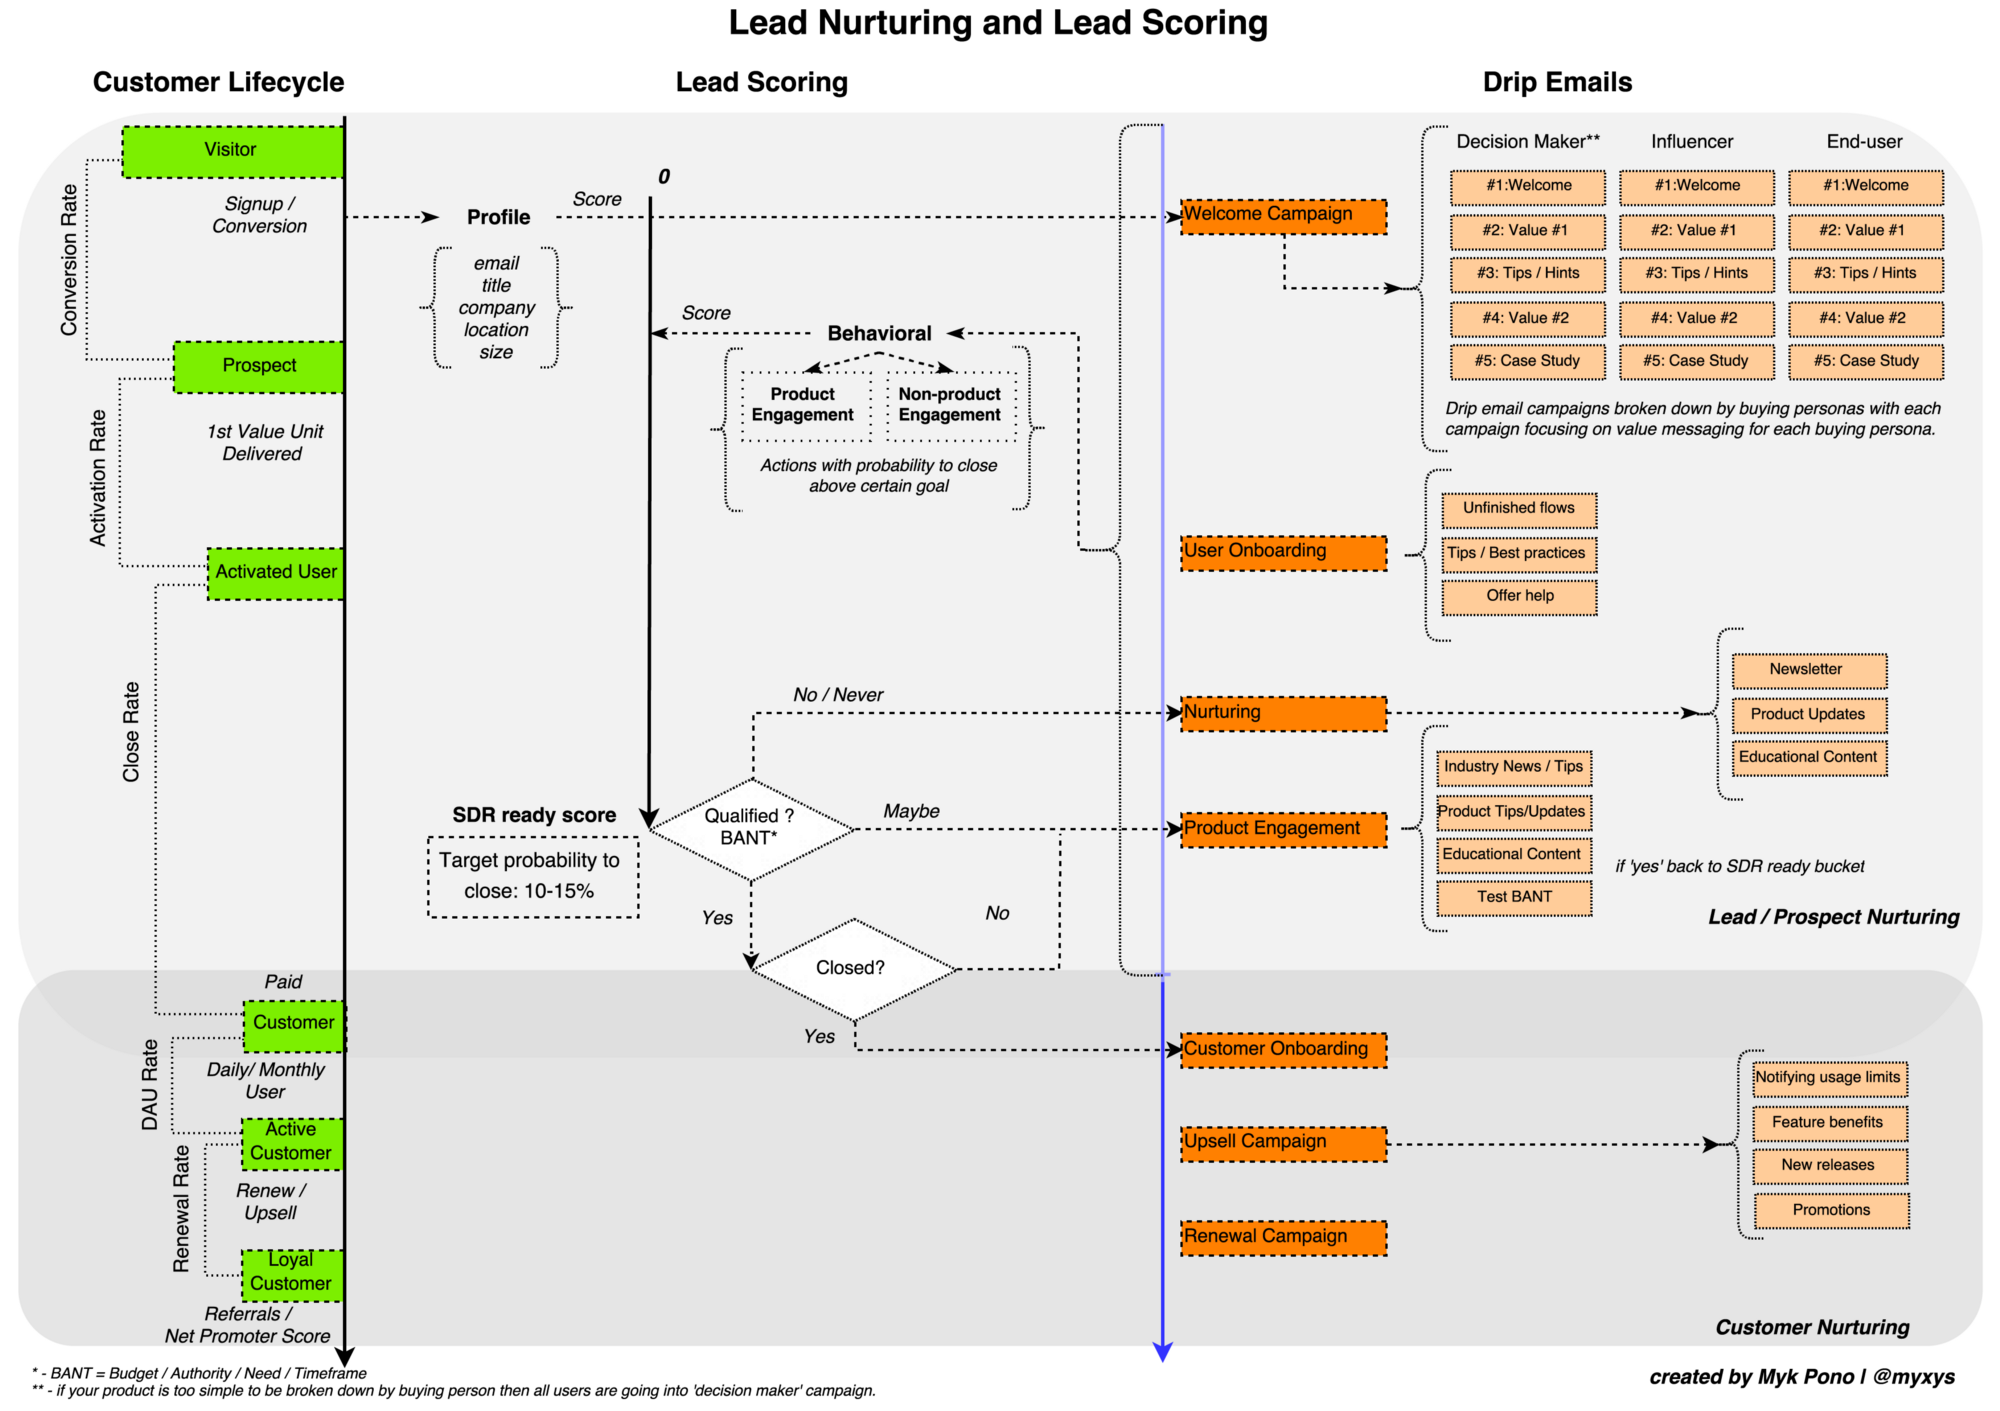 How to design lead nurturing lead scoring and drip email 4 selling design